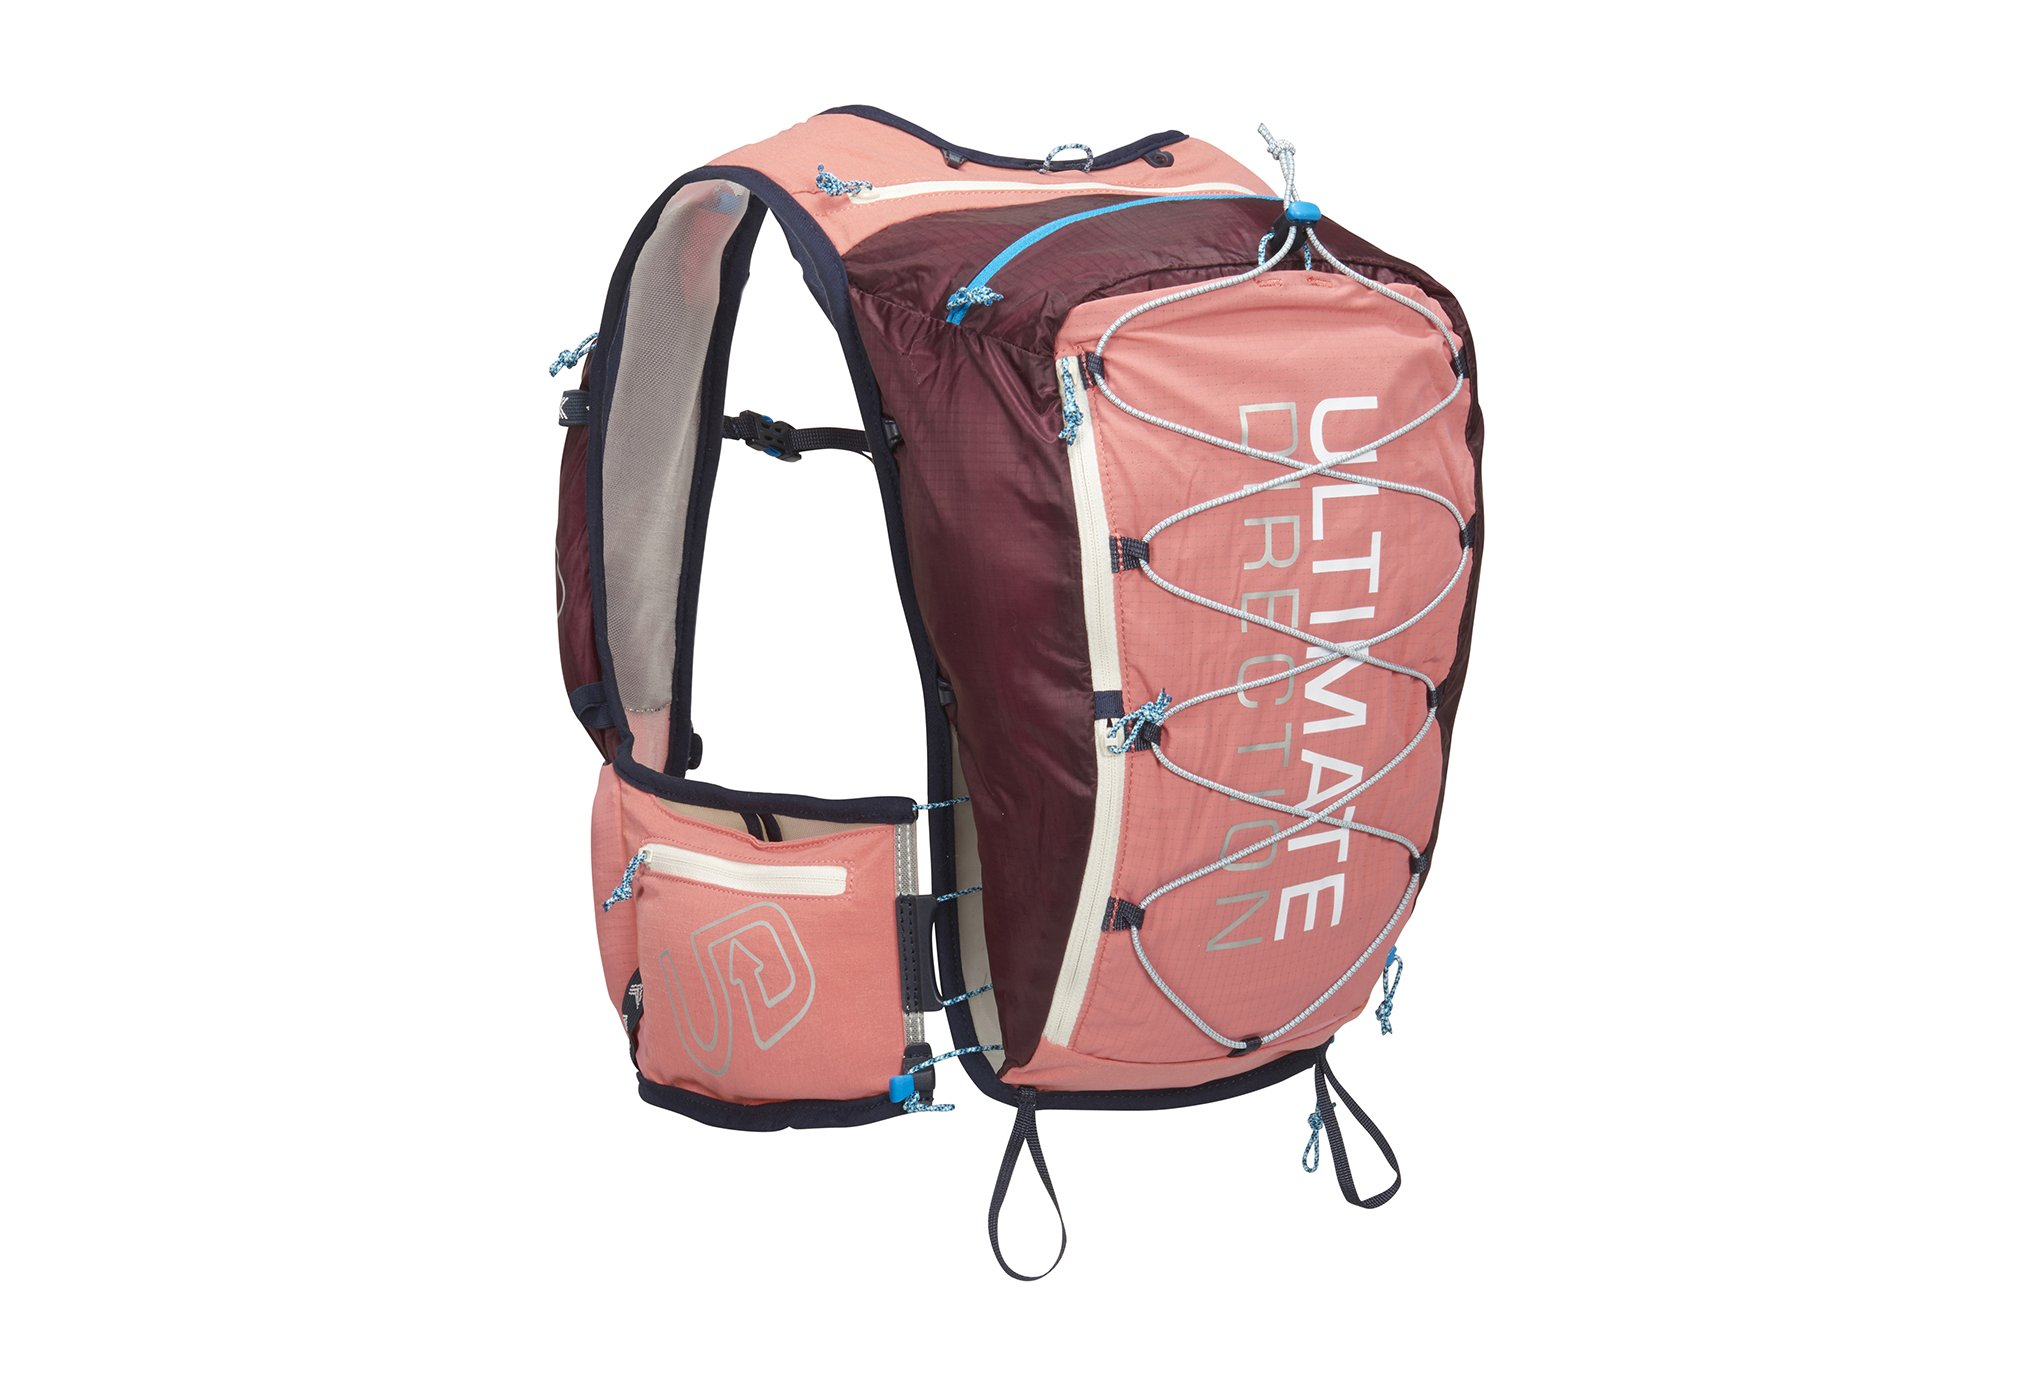 Ultimate Direction Adventure Vesta 4.0 W Sac hydratation / Gourde